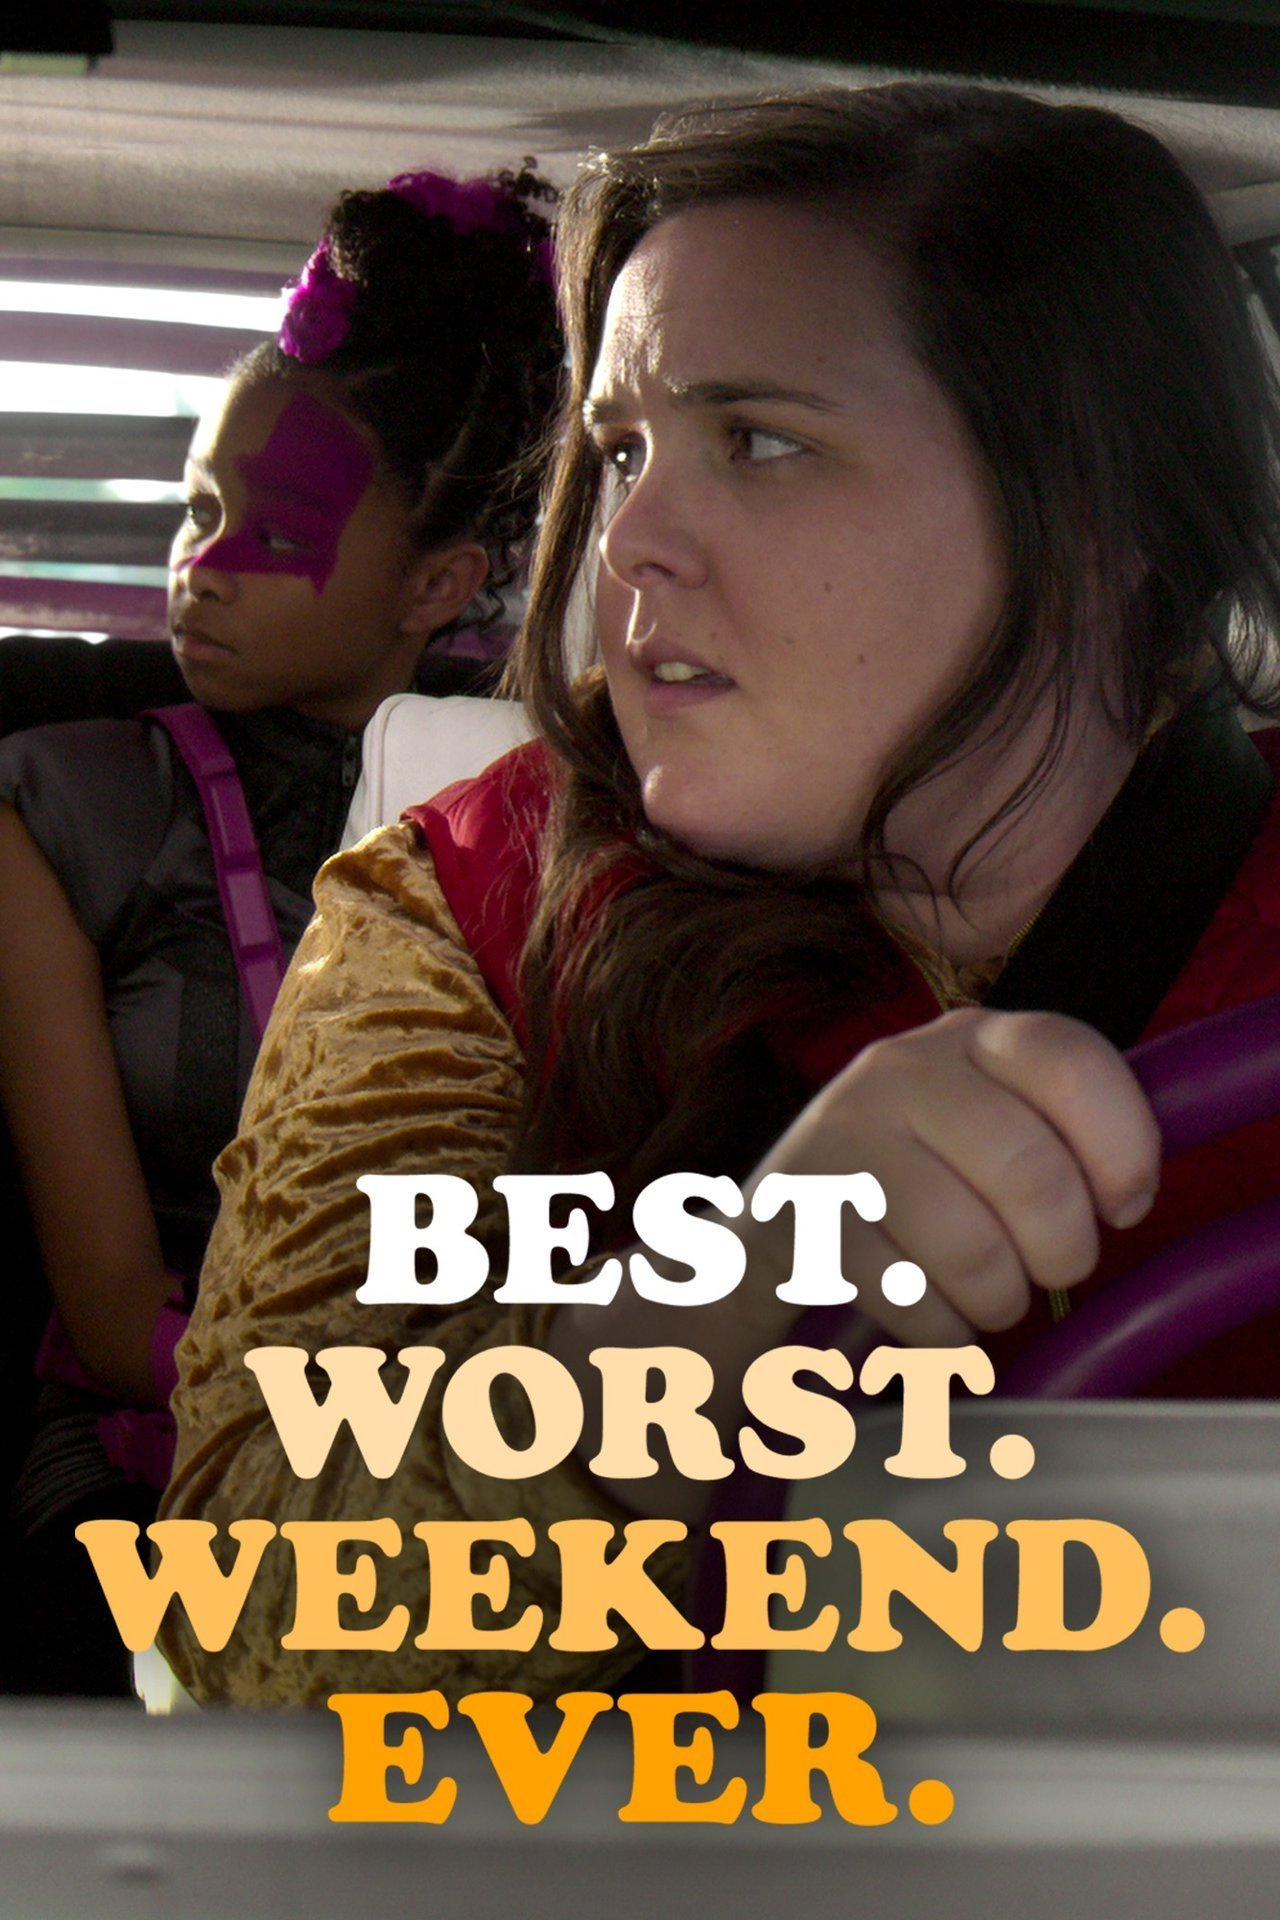 Best. Worst. Weekend. Ever.